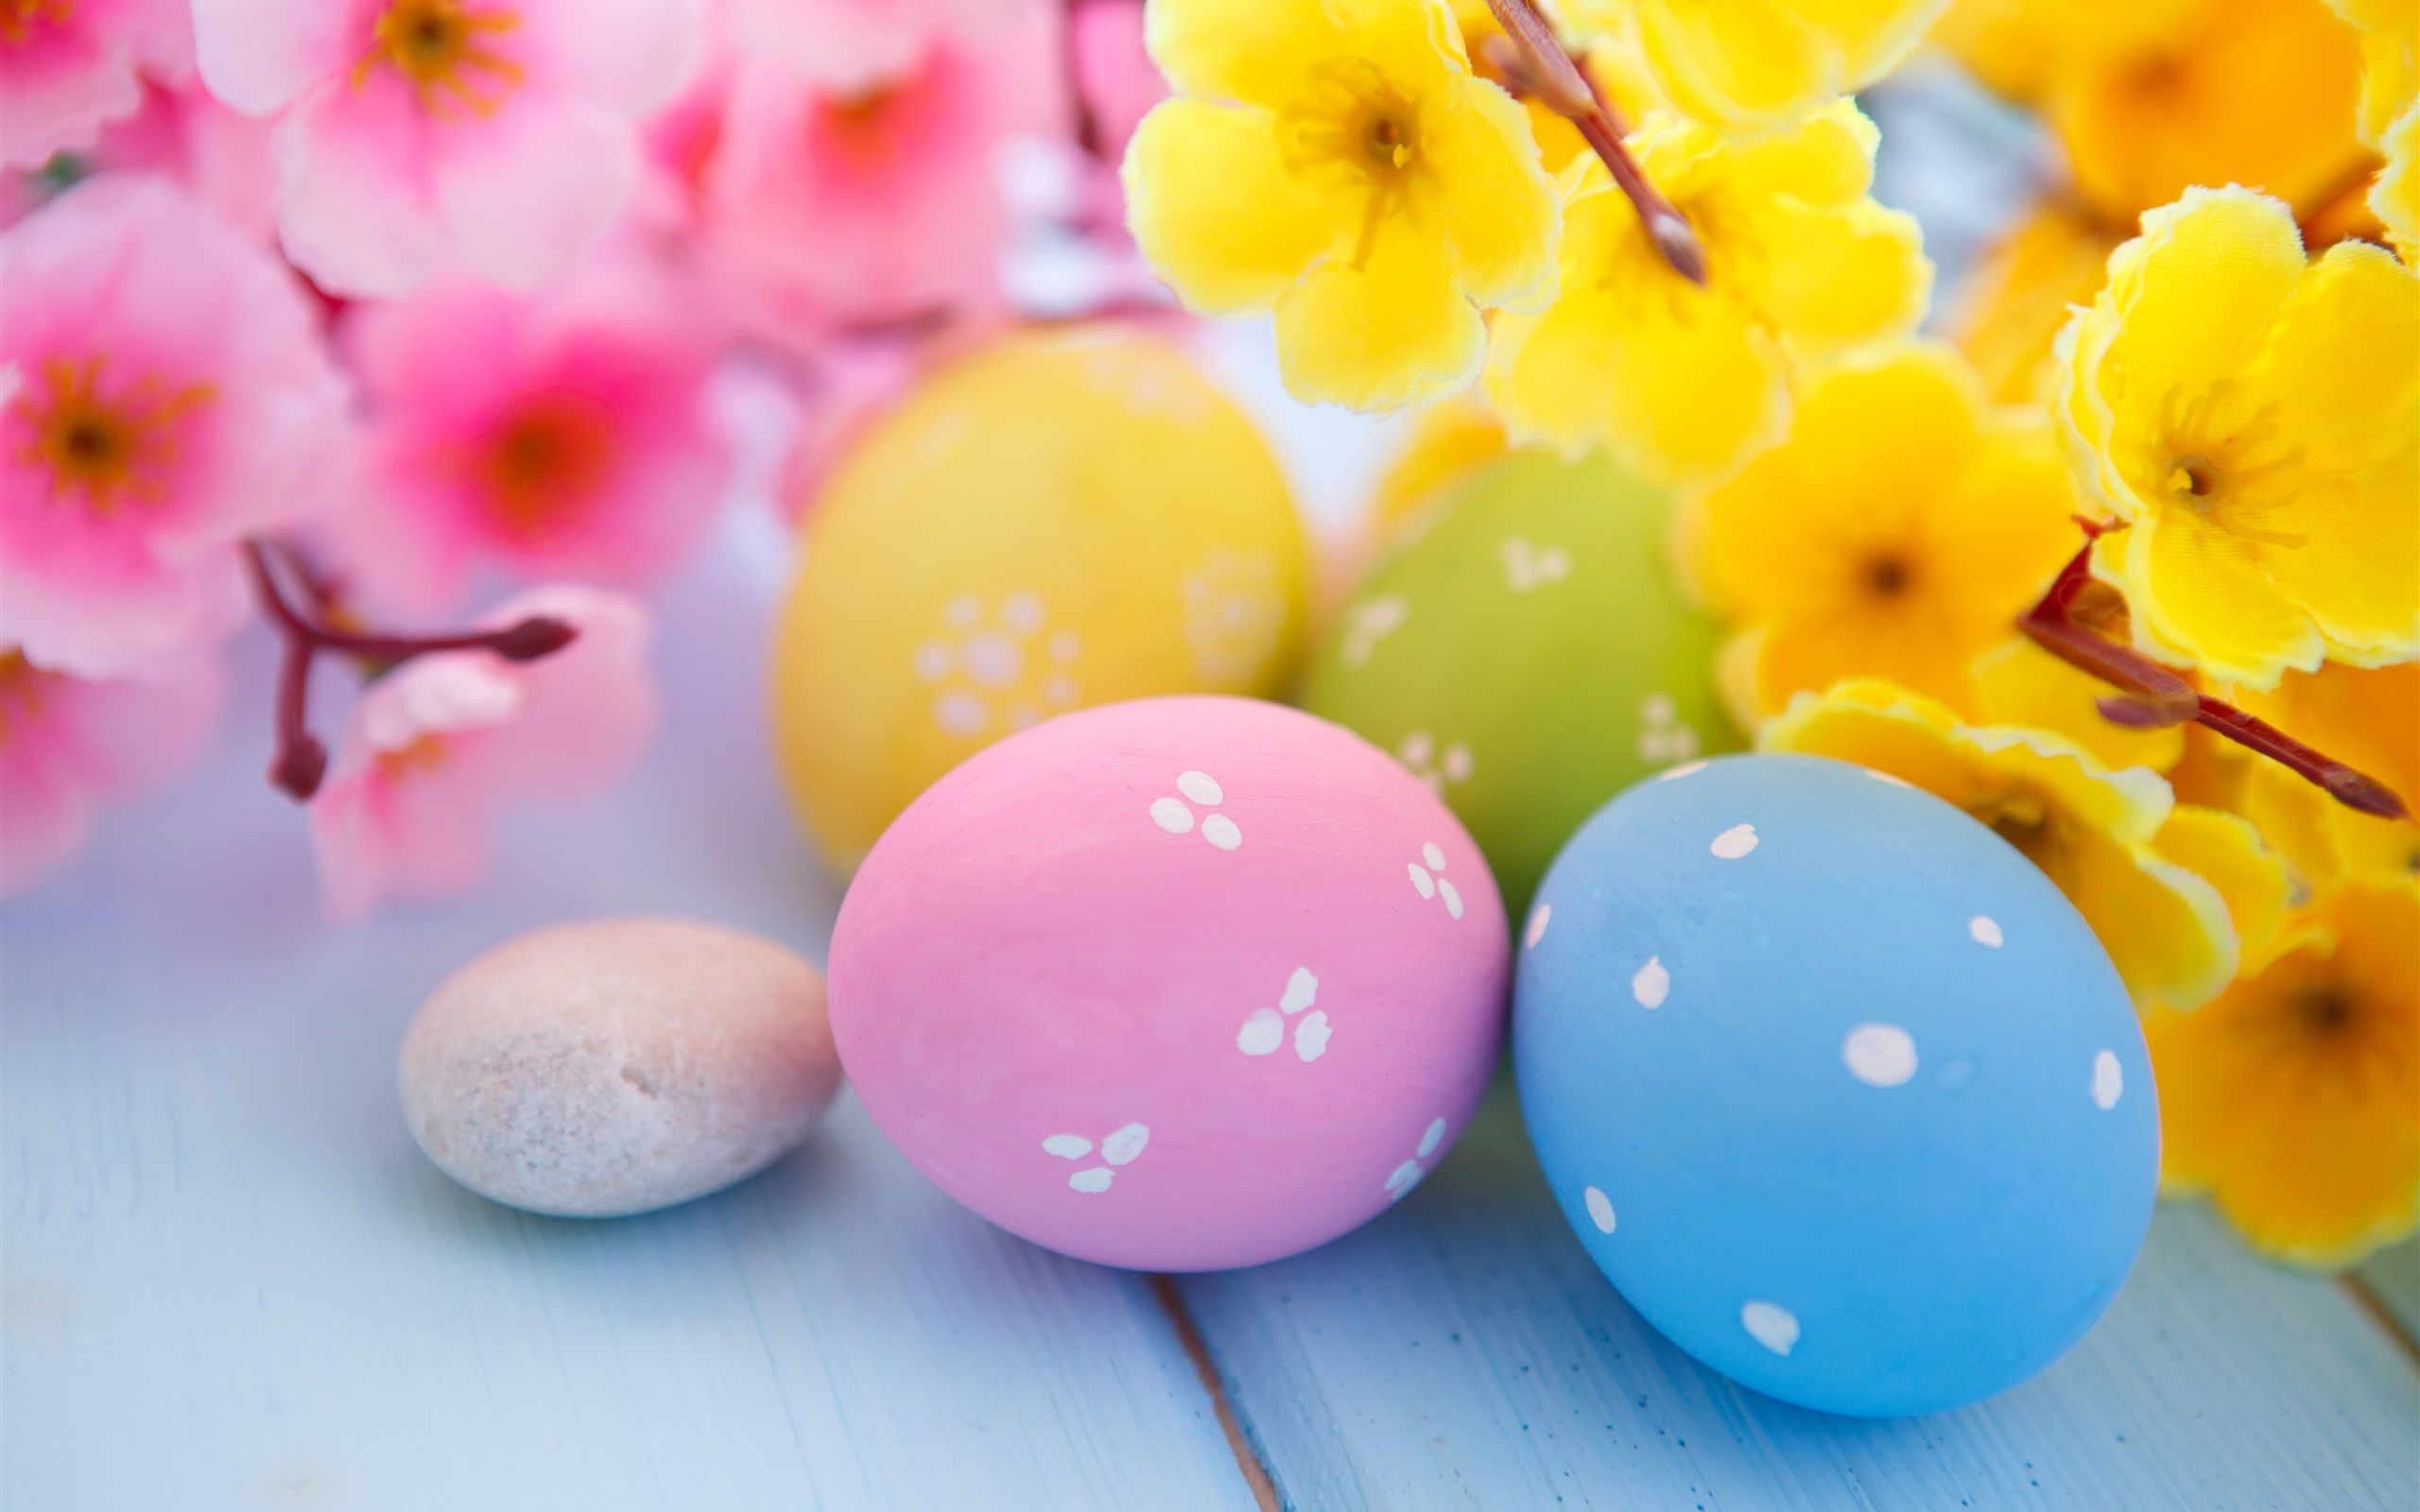 2560x1600 Easter Eggs and Spring Blossoms, HD Celebrations, 4k ...